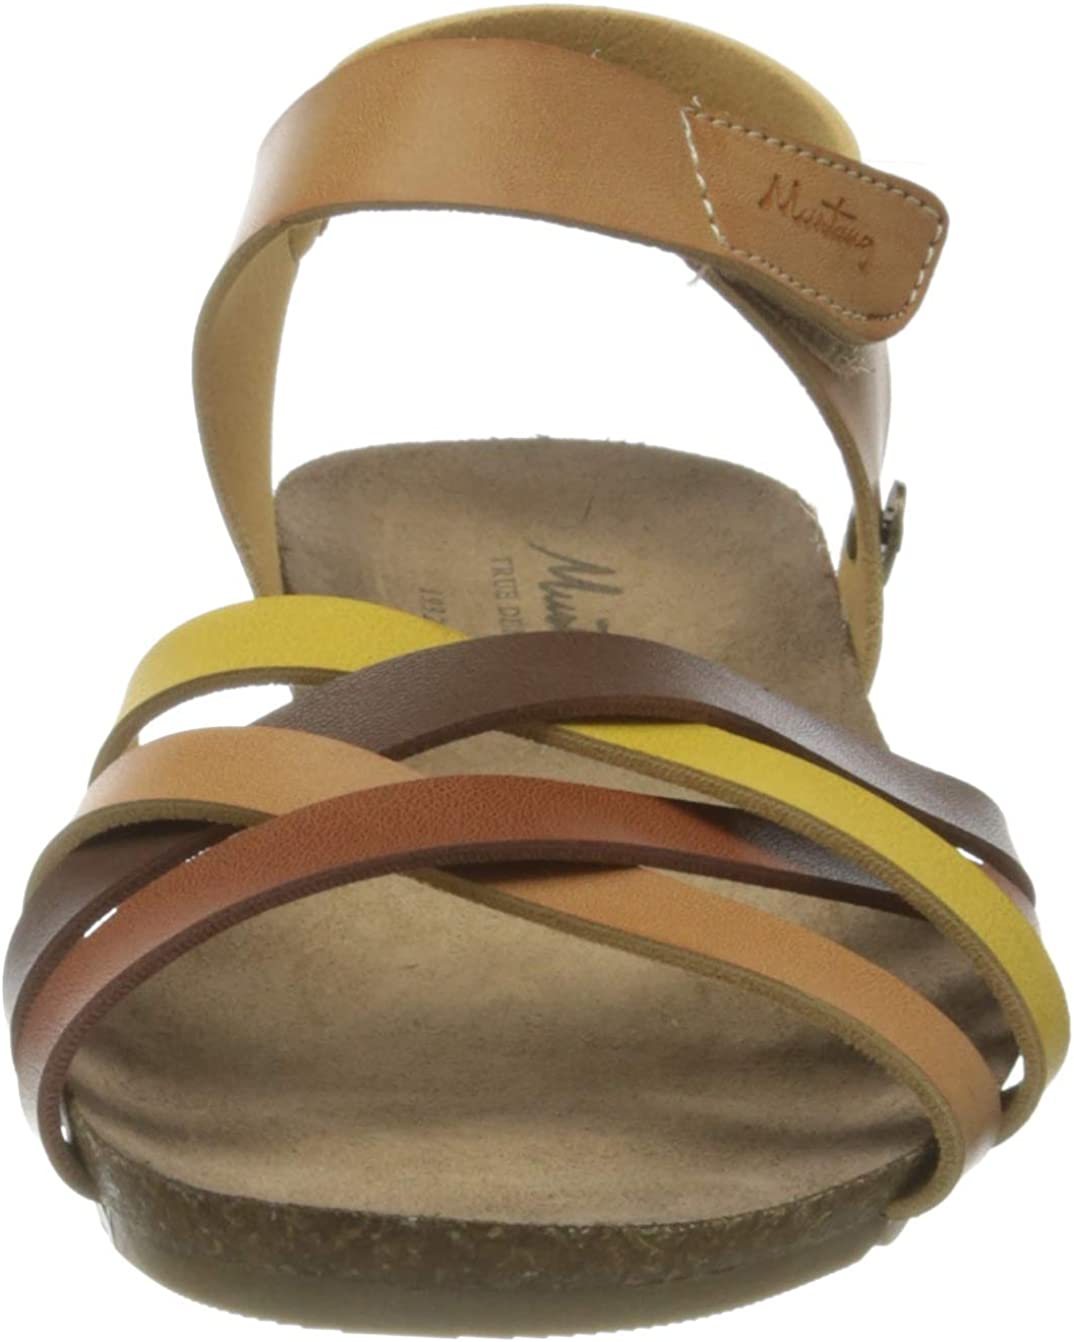 Mustang Girls 5057-801-369 Ankle Strap Sandals